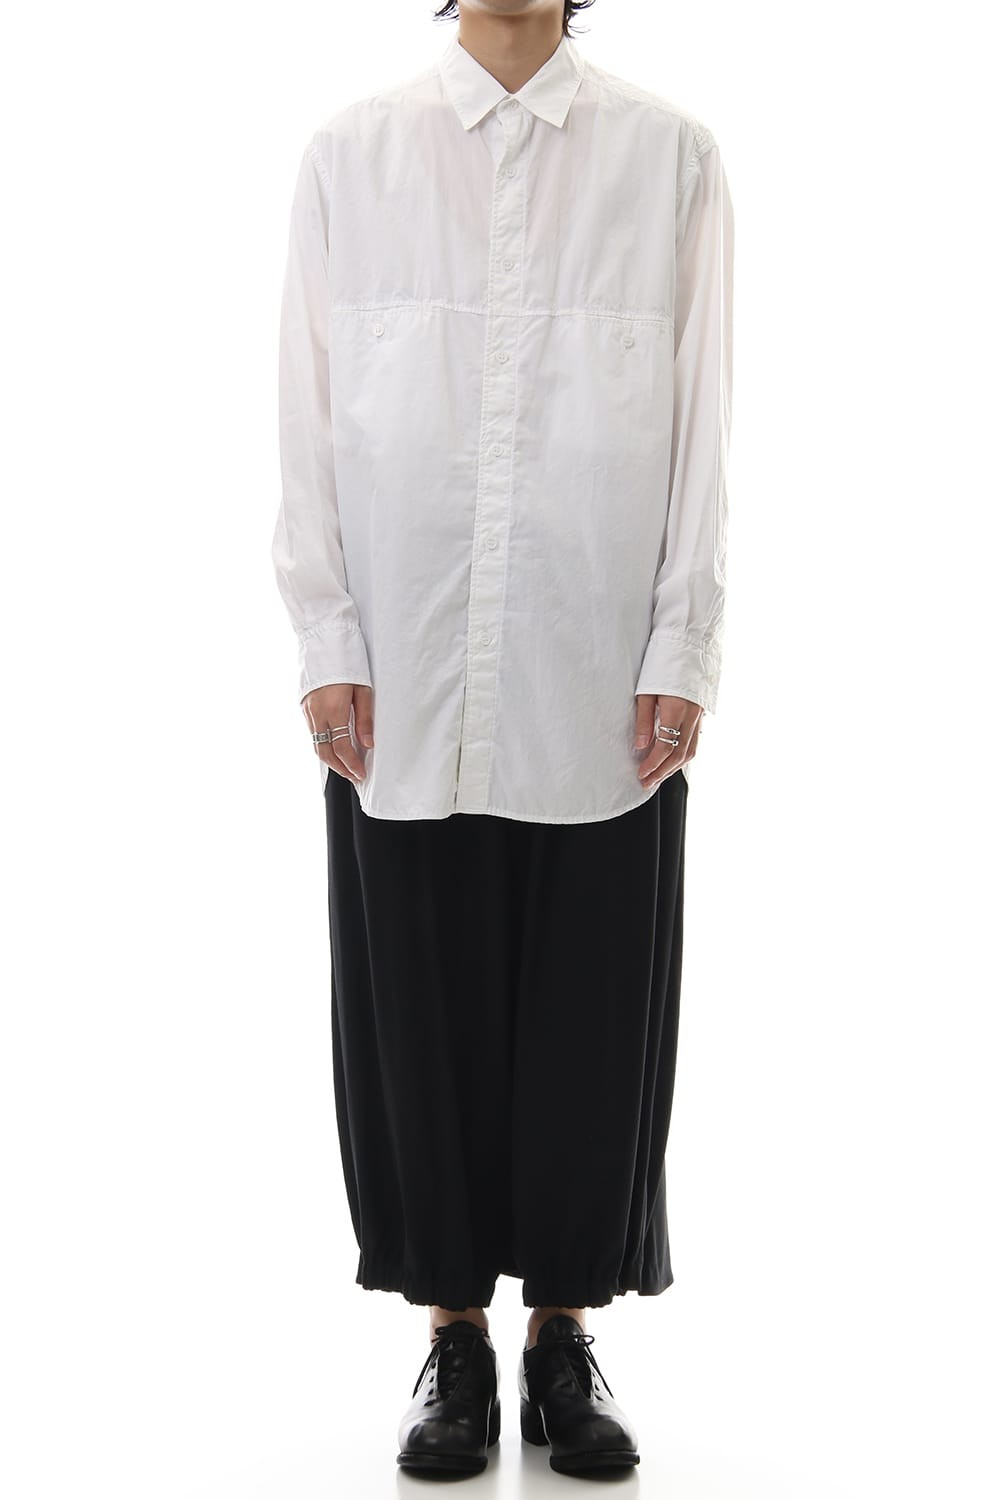 Front Switching Broad cloth Blouse